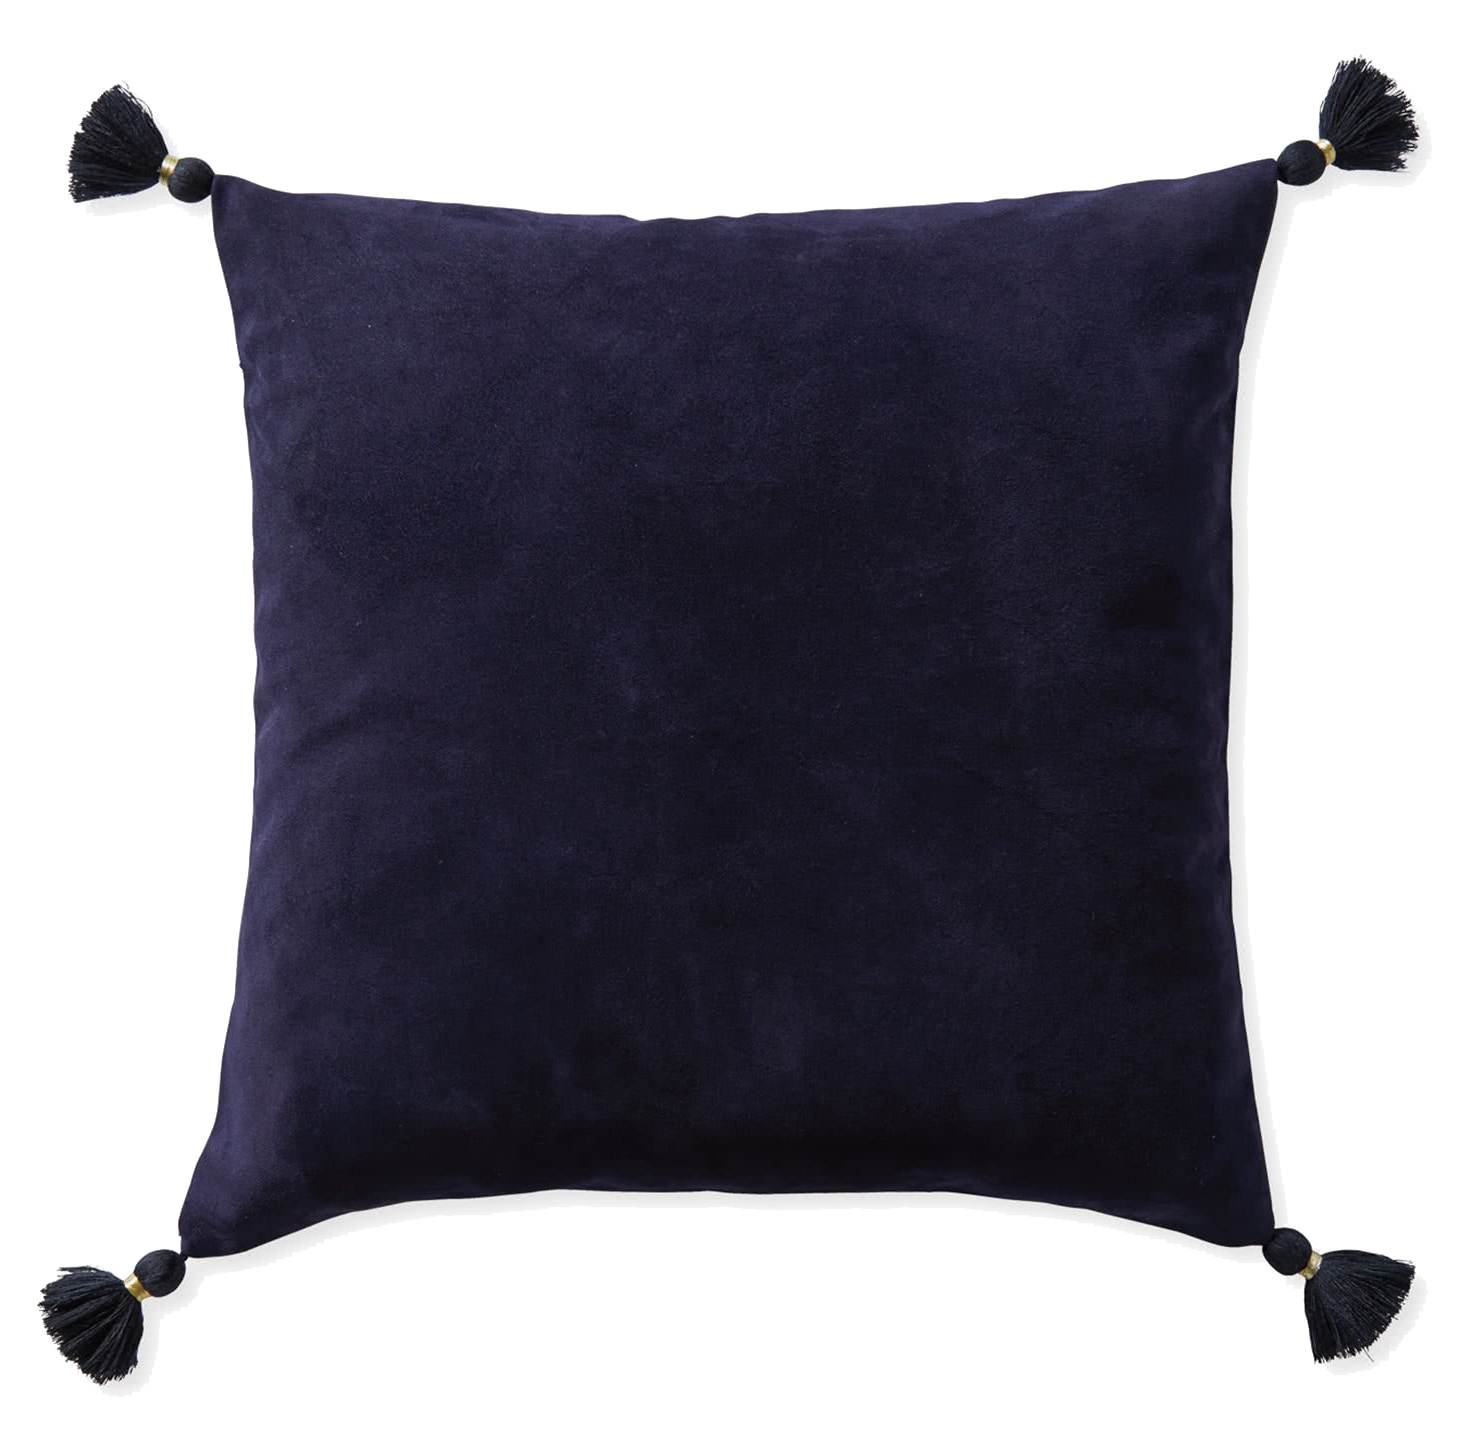 Dec_Pillow_Suede_Eva_Tassel_20x20_Navy_Front_MV_0149_Crop_SH.png